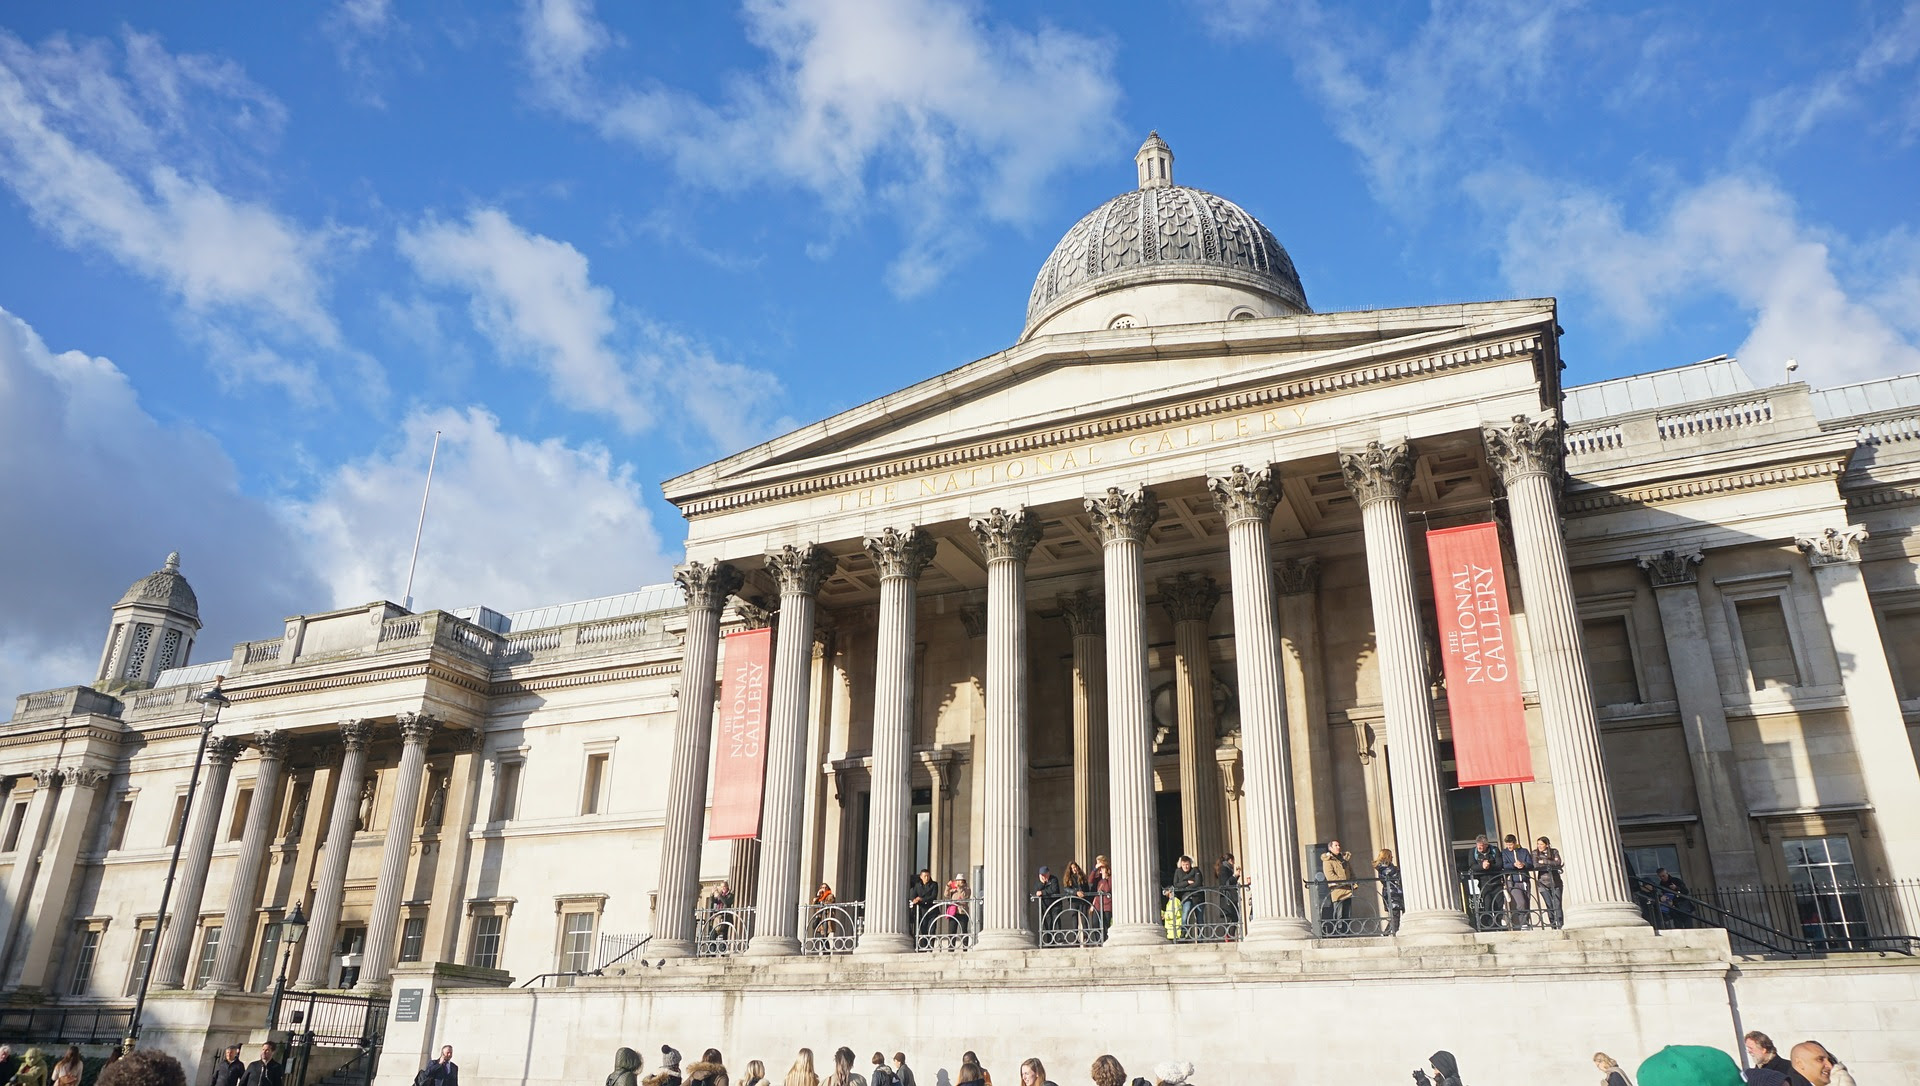 The British Museum, a great tourist places to visit in London